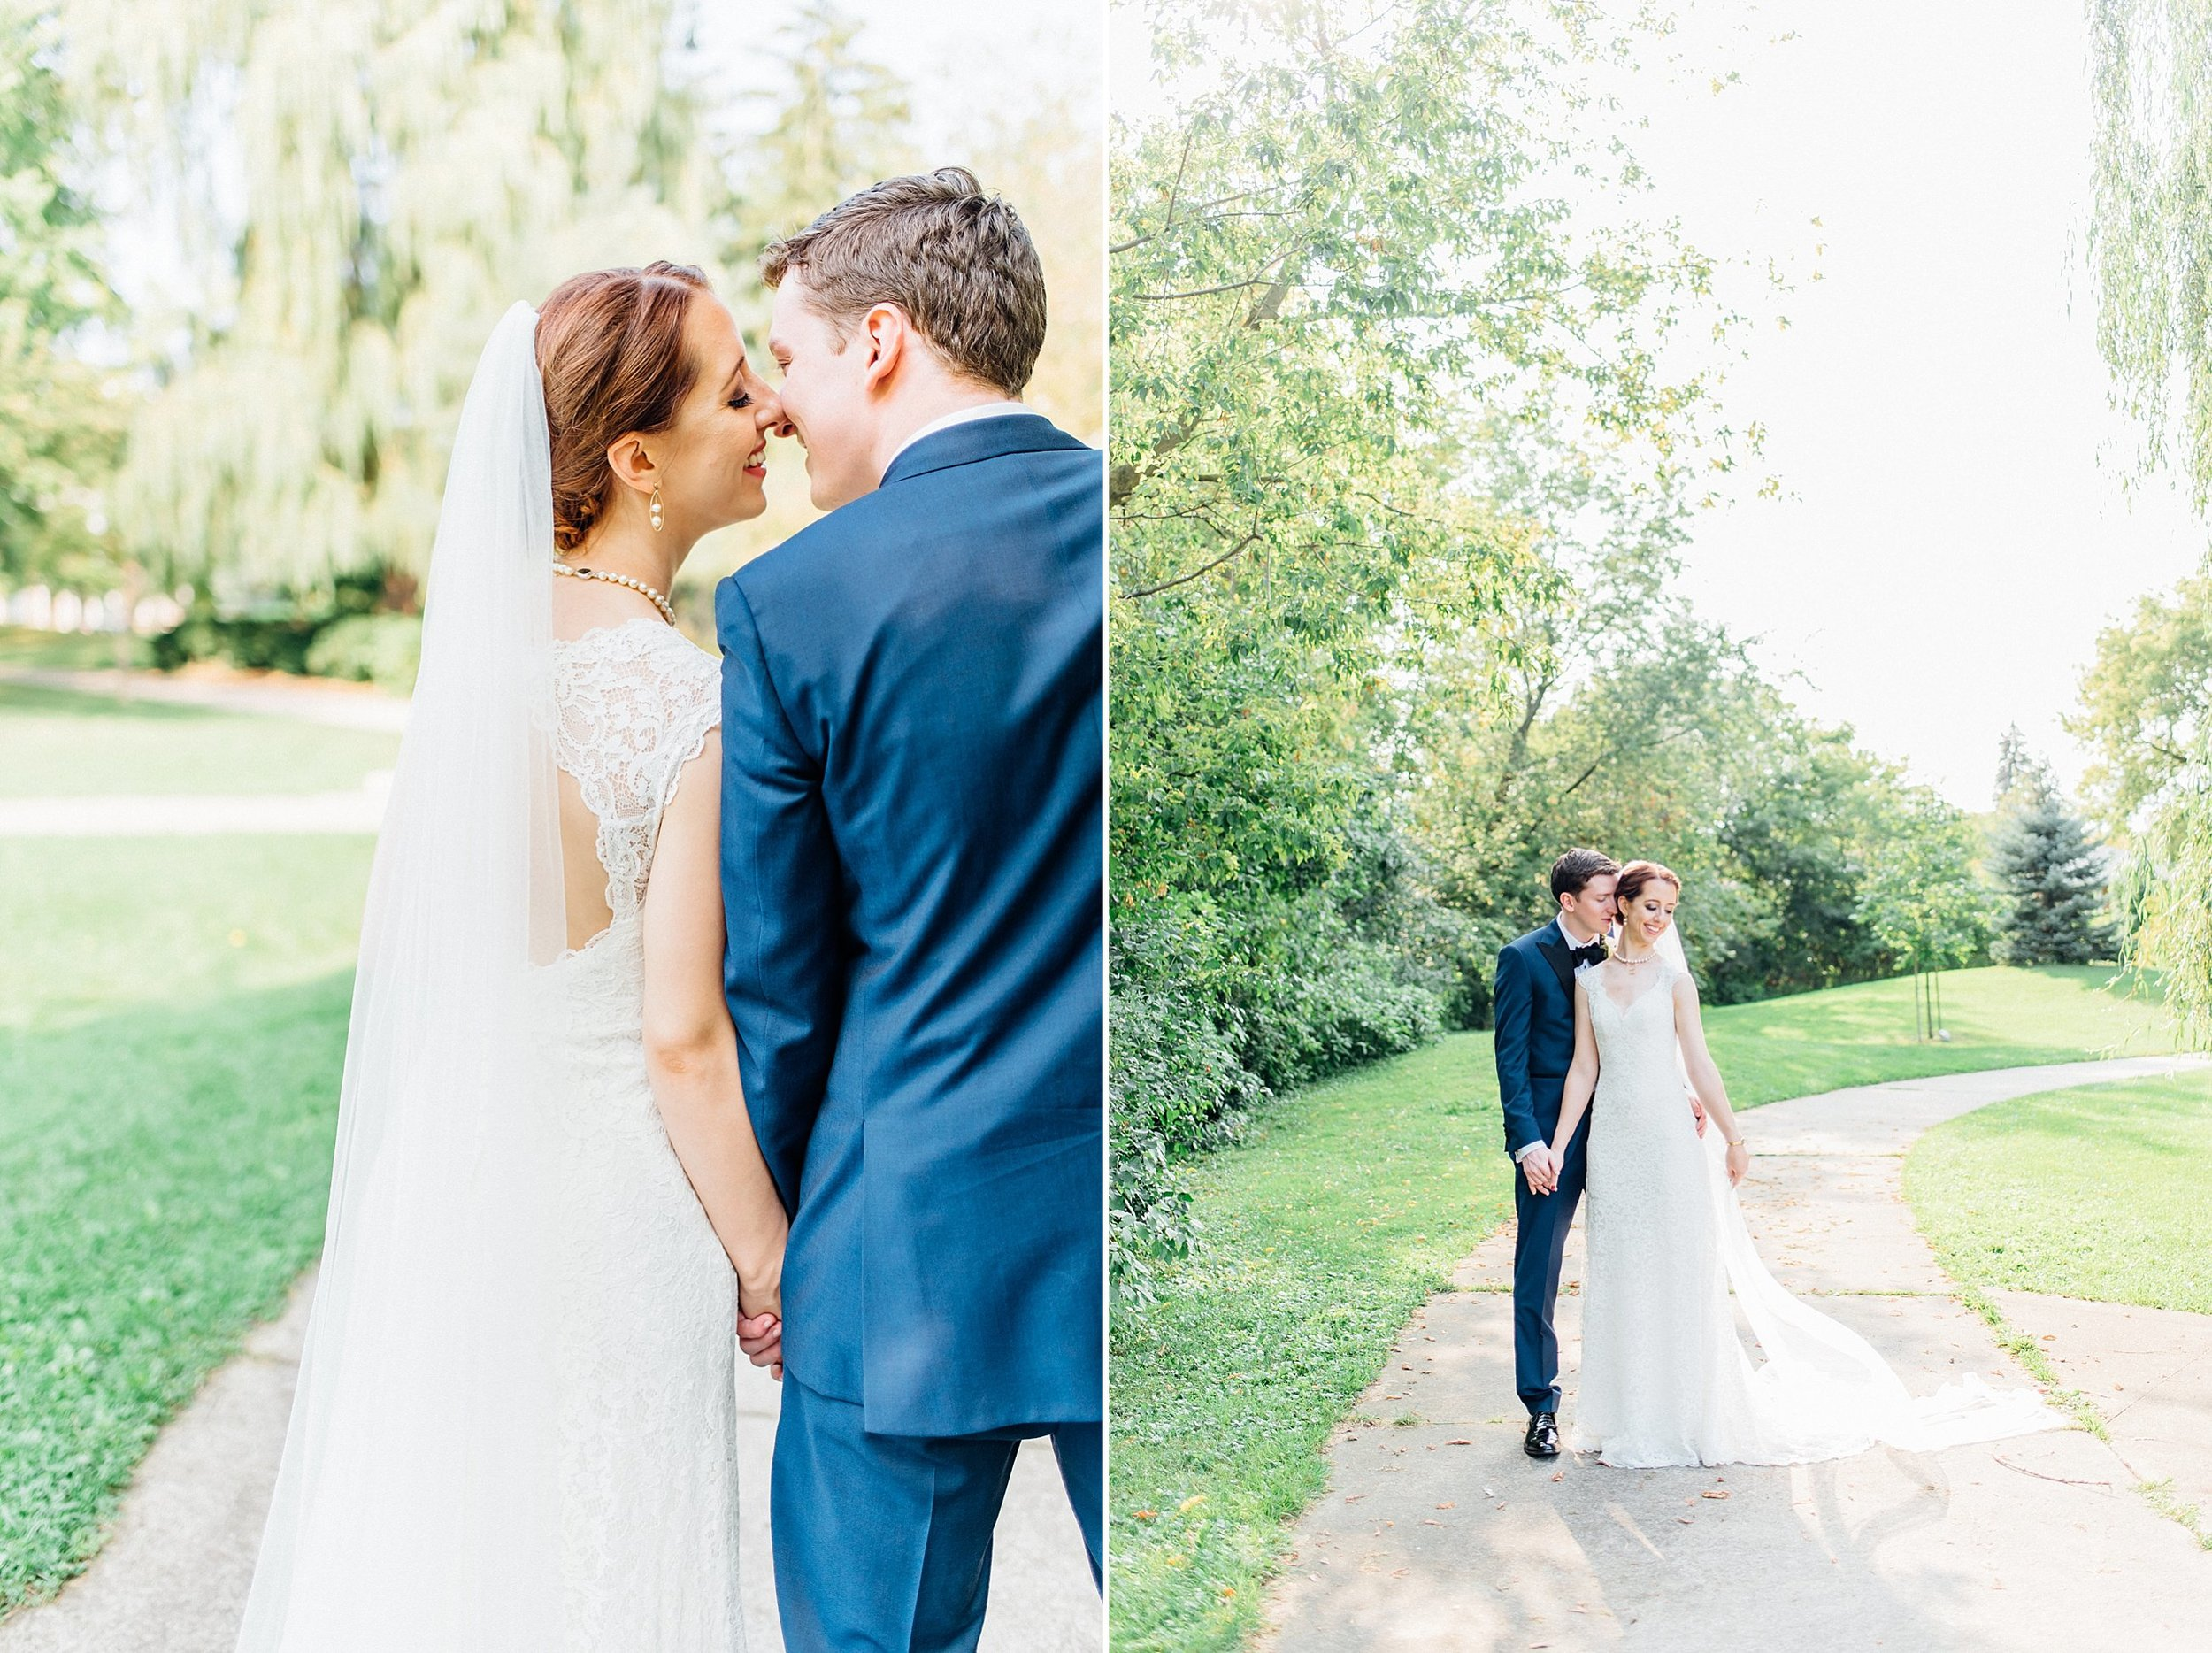 Ali and Batoul Photography - light, airy, indie documentary Ottawa wedding photographer_0221.jpg